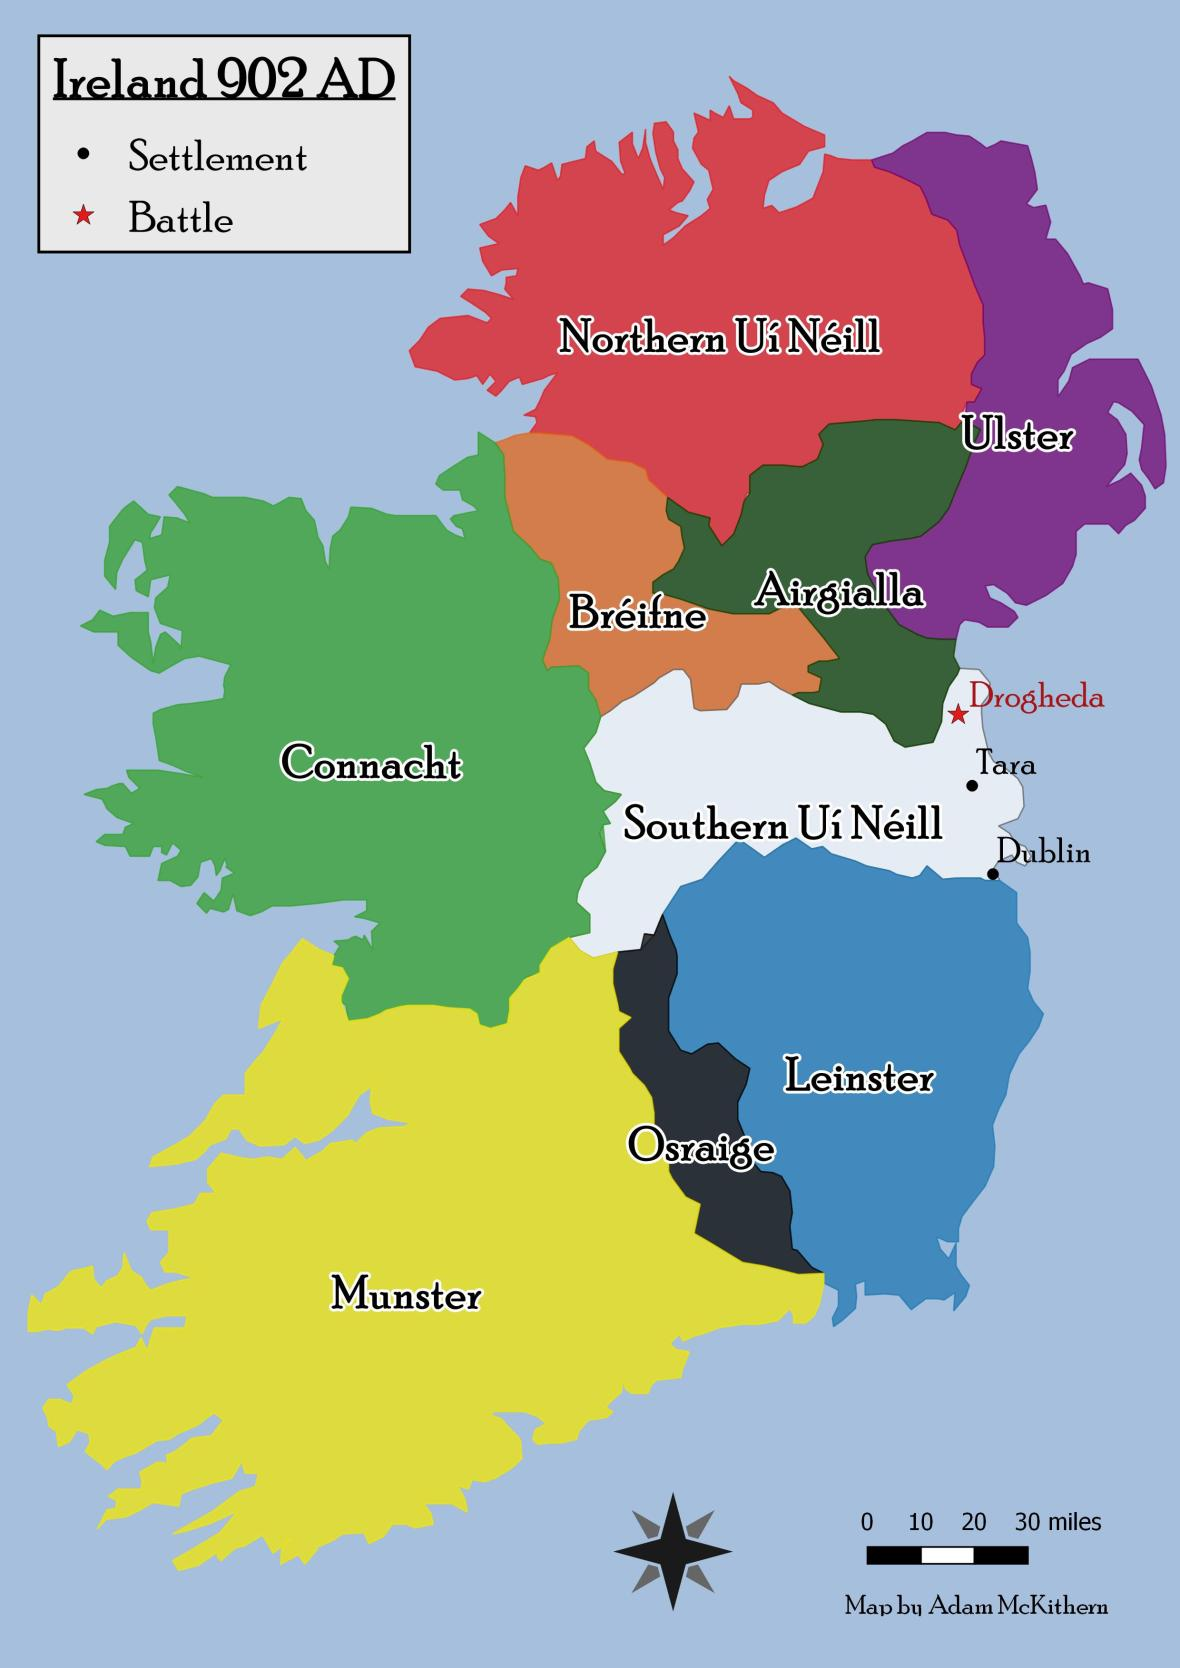 ireland-902-ce-by-adam-mckithern